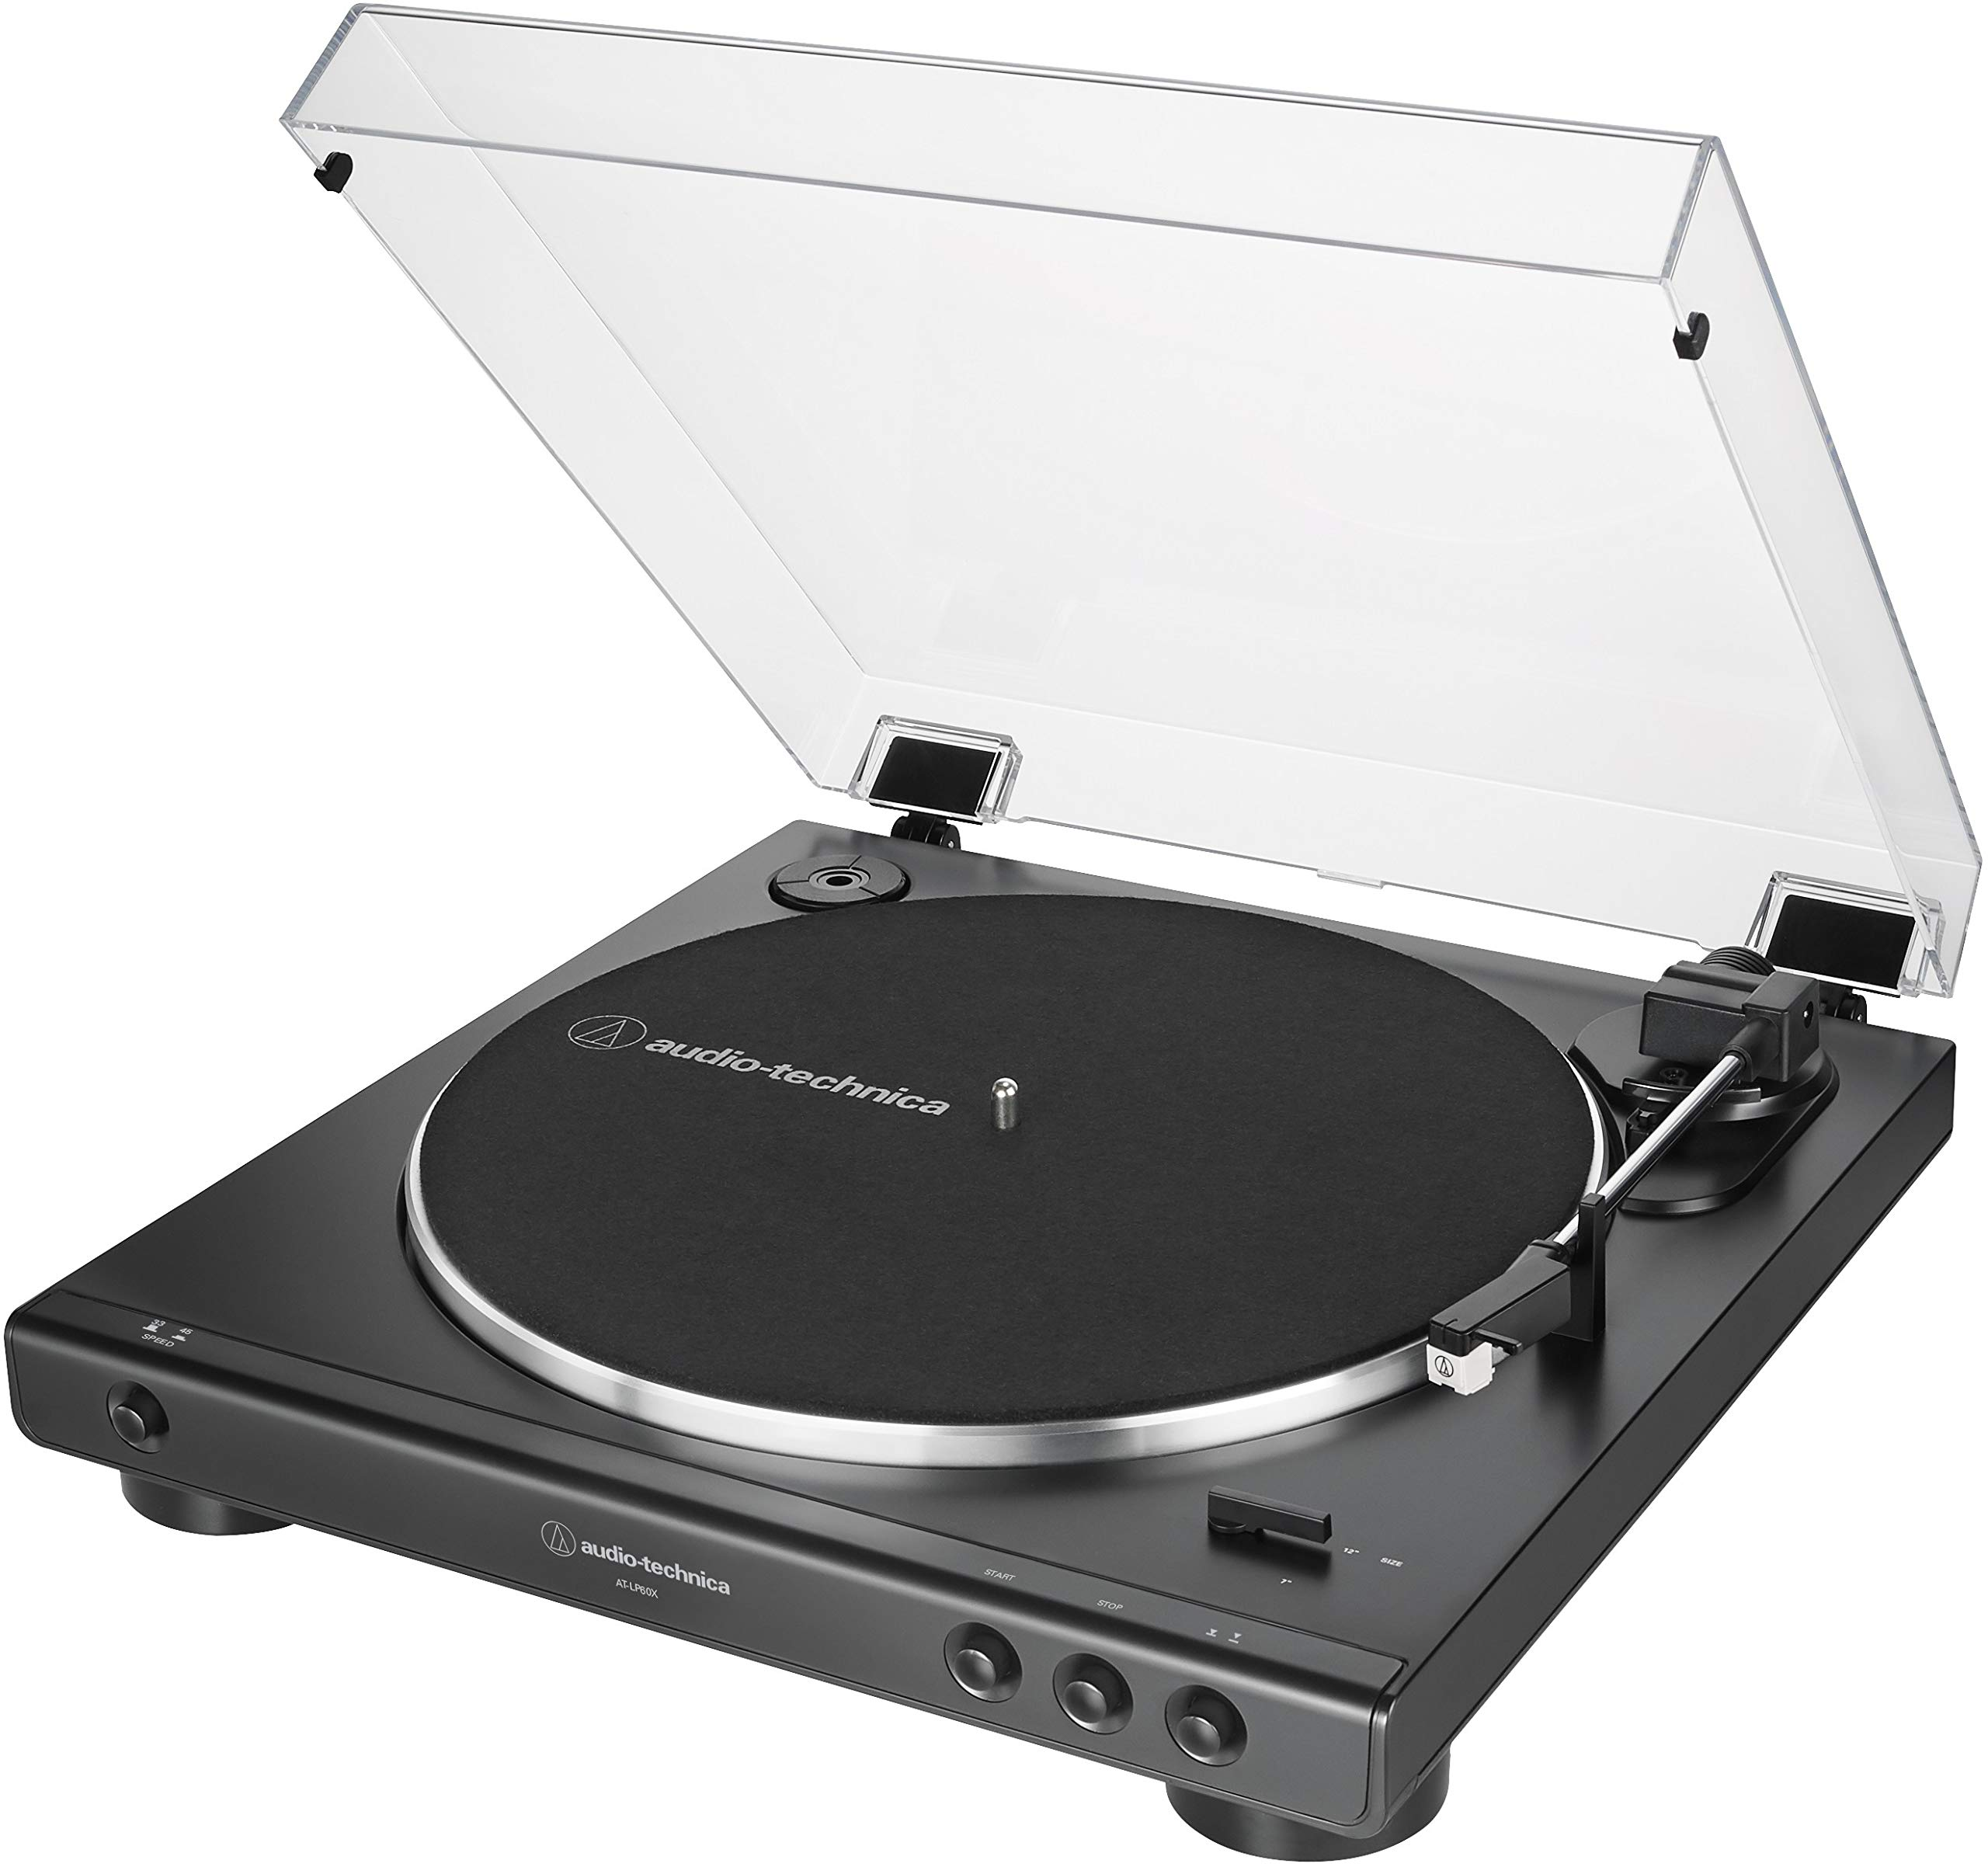 Audio-Technica AT-LP60X-BK Fully Automatic Belt-Drive Stereo Turntable, Black, Hi-Fidelity, Plays 33 -1/3 and 45 RPM Vinyl Records, Dust Cover, Anti-Resonance, Die-Cast Aluminum Platter by Audio-Technica (Image #1)